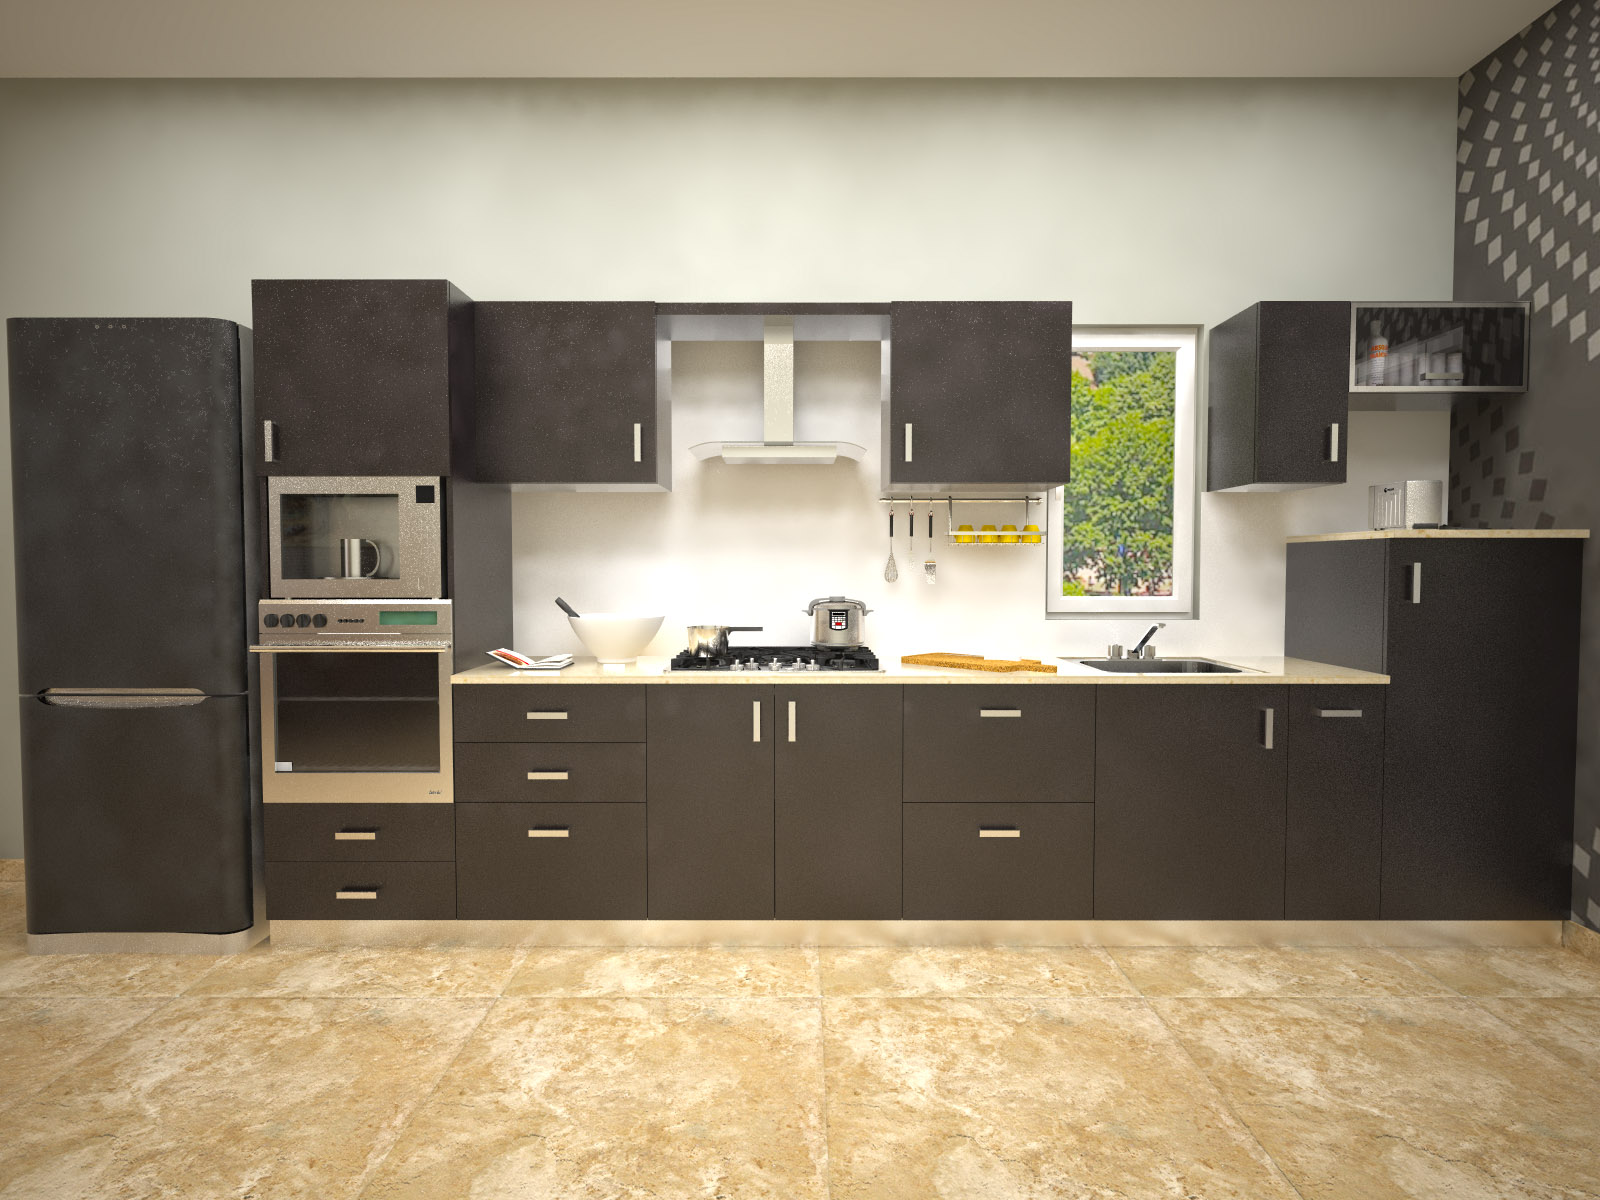 Glossy Laminated Indian Parallel Kitchen